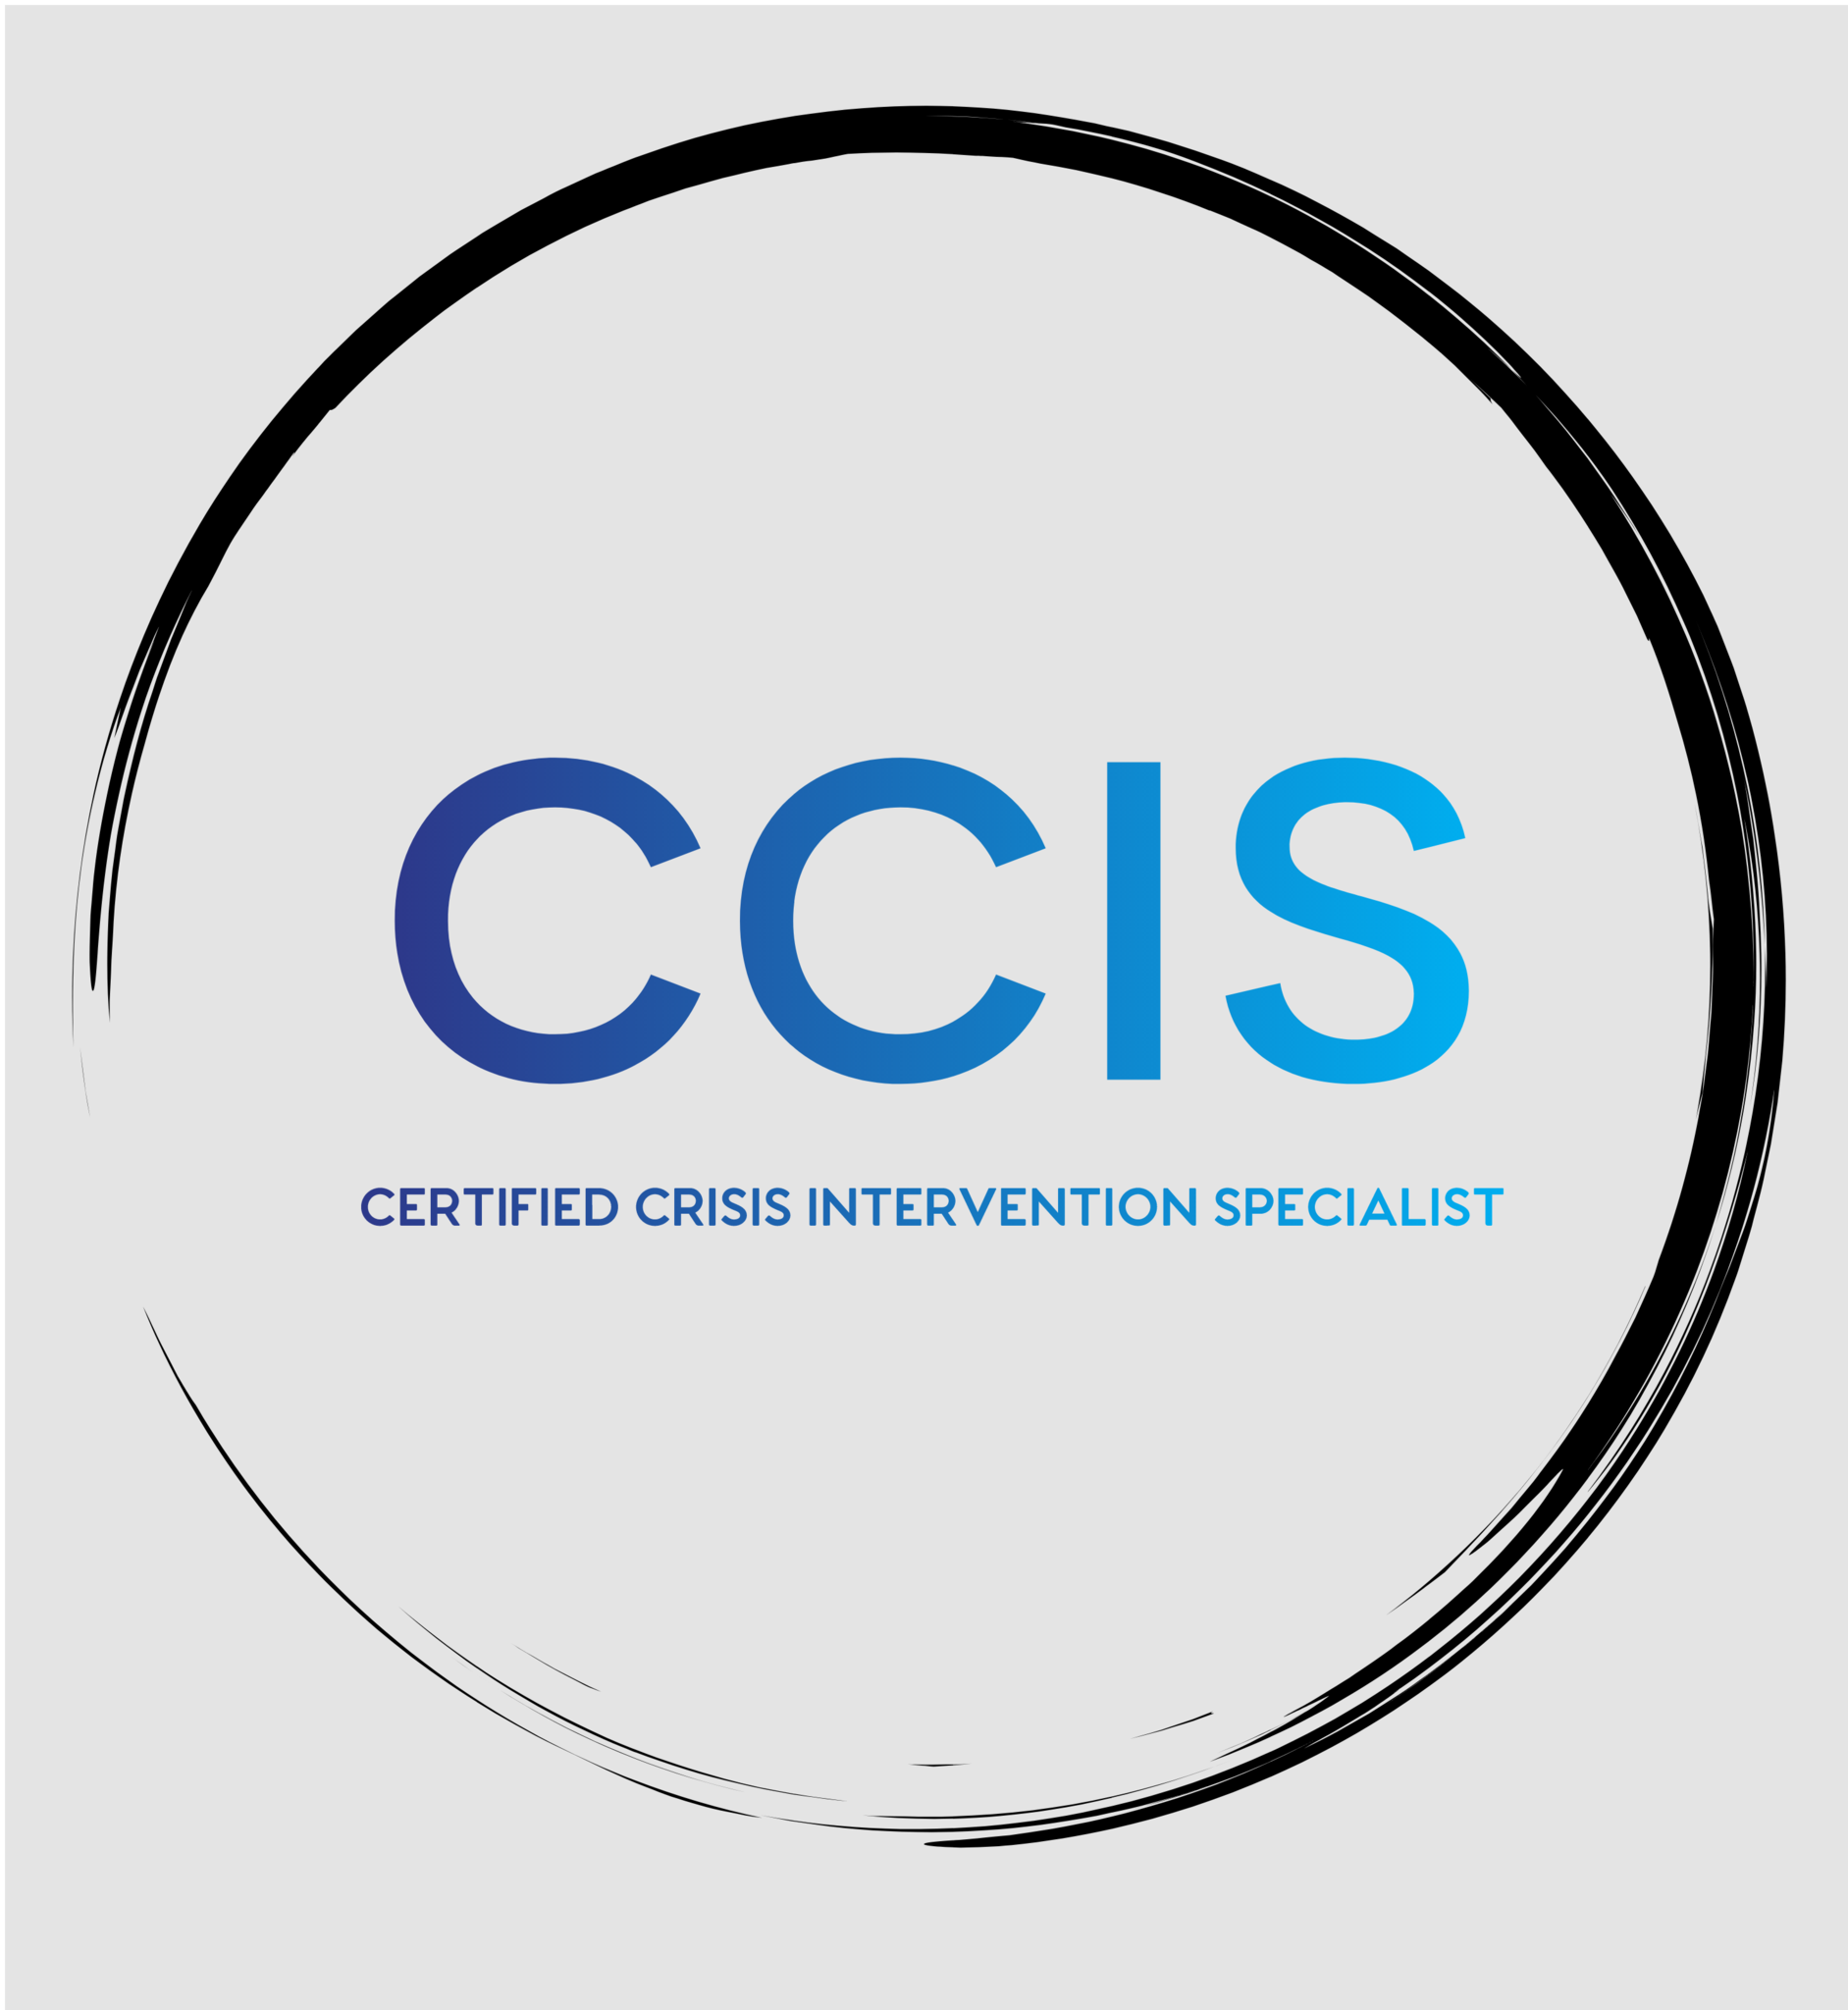 Certified Crisis Intervention Specialist